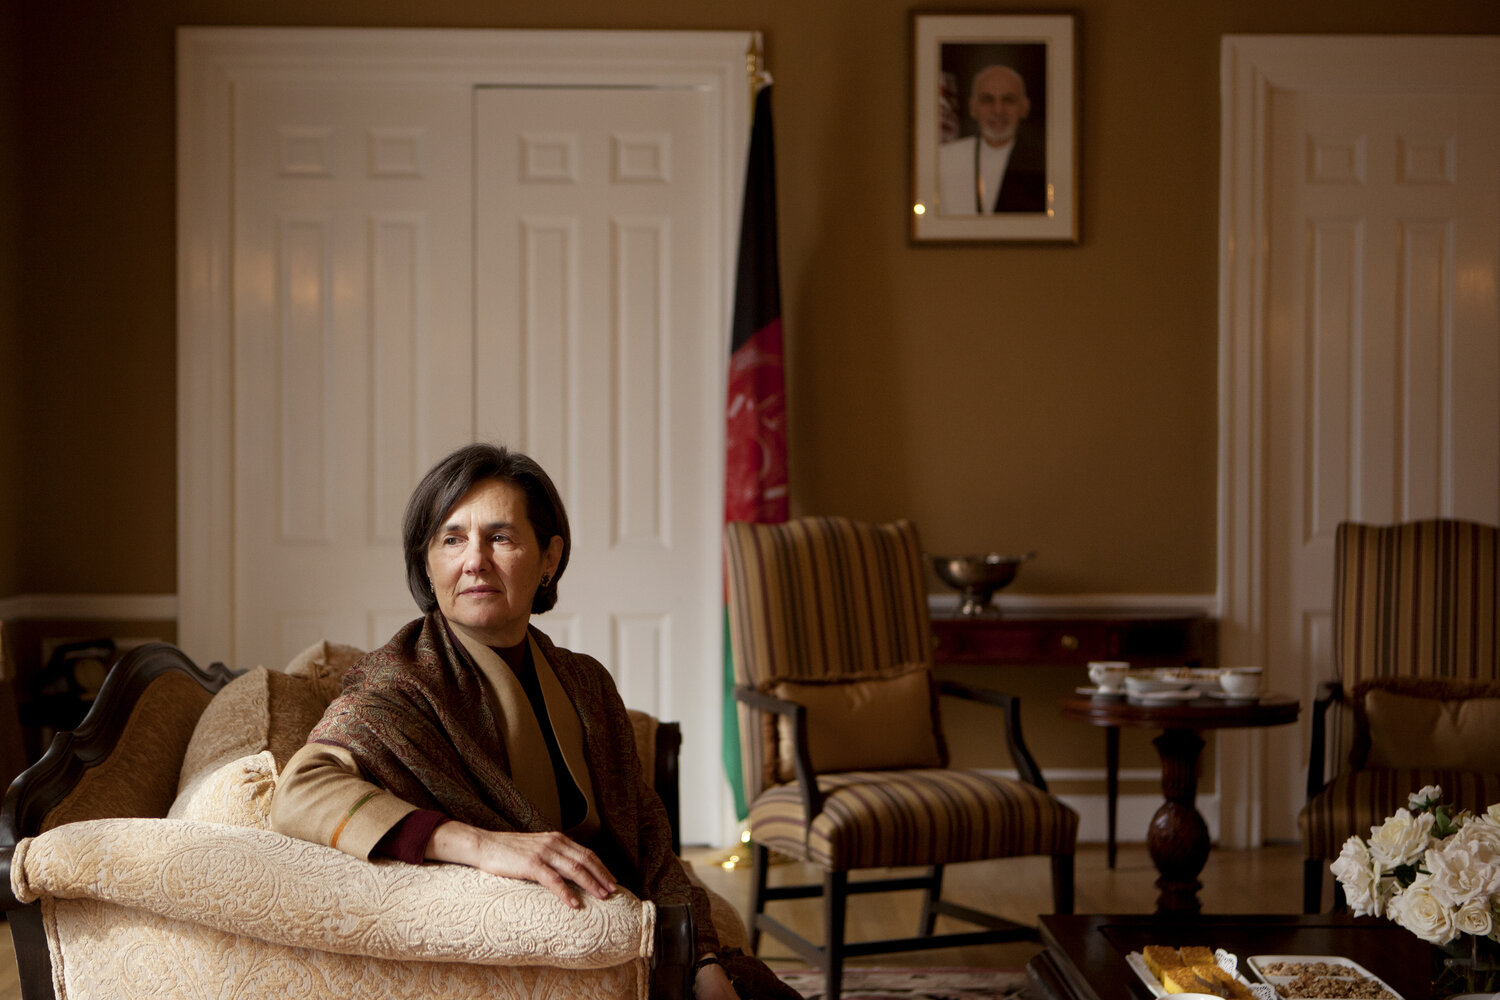 Lebanese-born Rula Ghani is Afghanistan's first lady. The wife of newly elected Afghan President Ashraf Ghani has her own office in the presidential palace and intends to play a prominent role in public life.